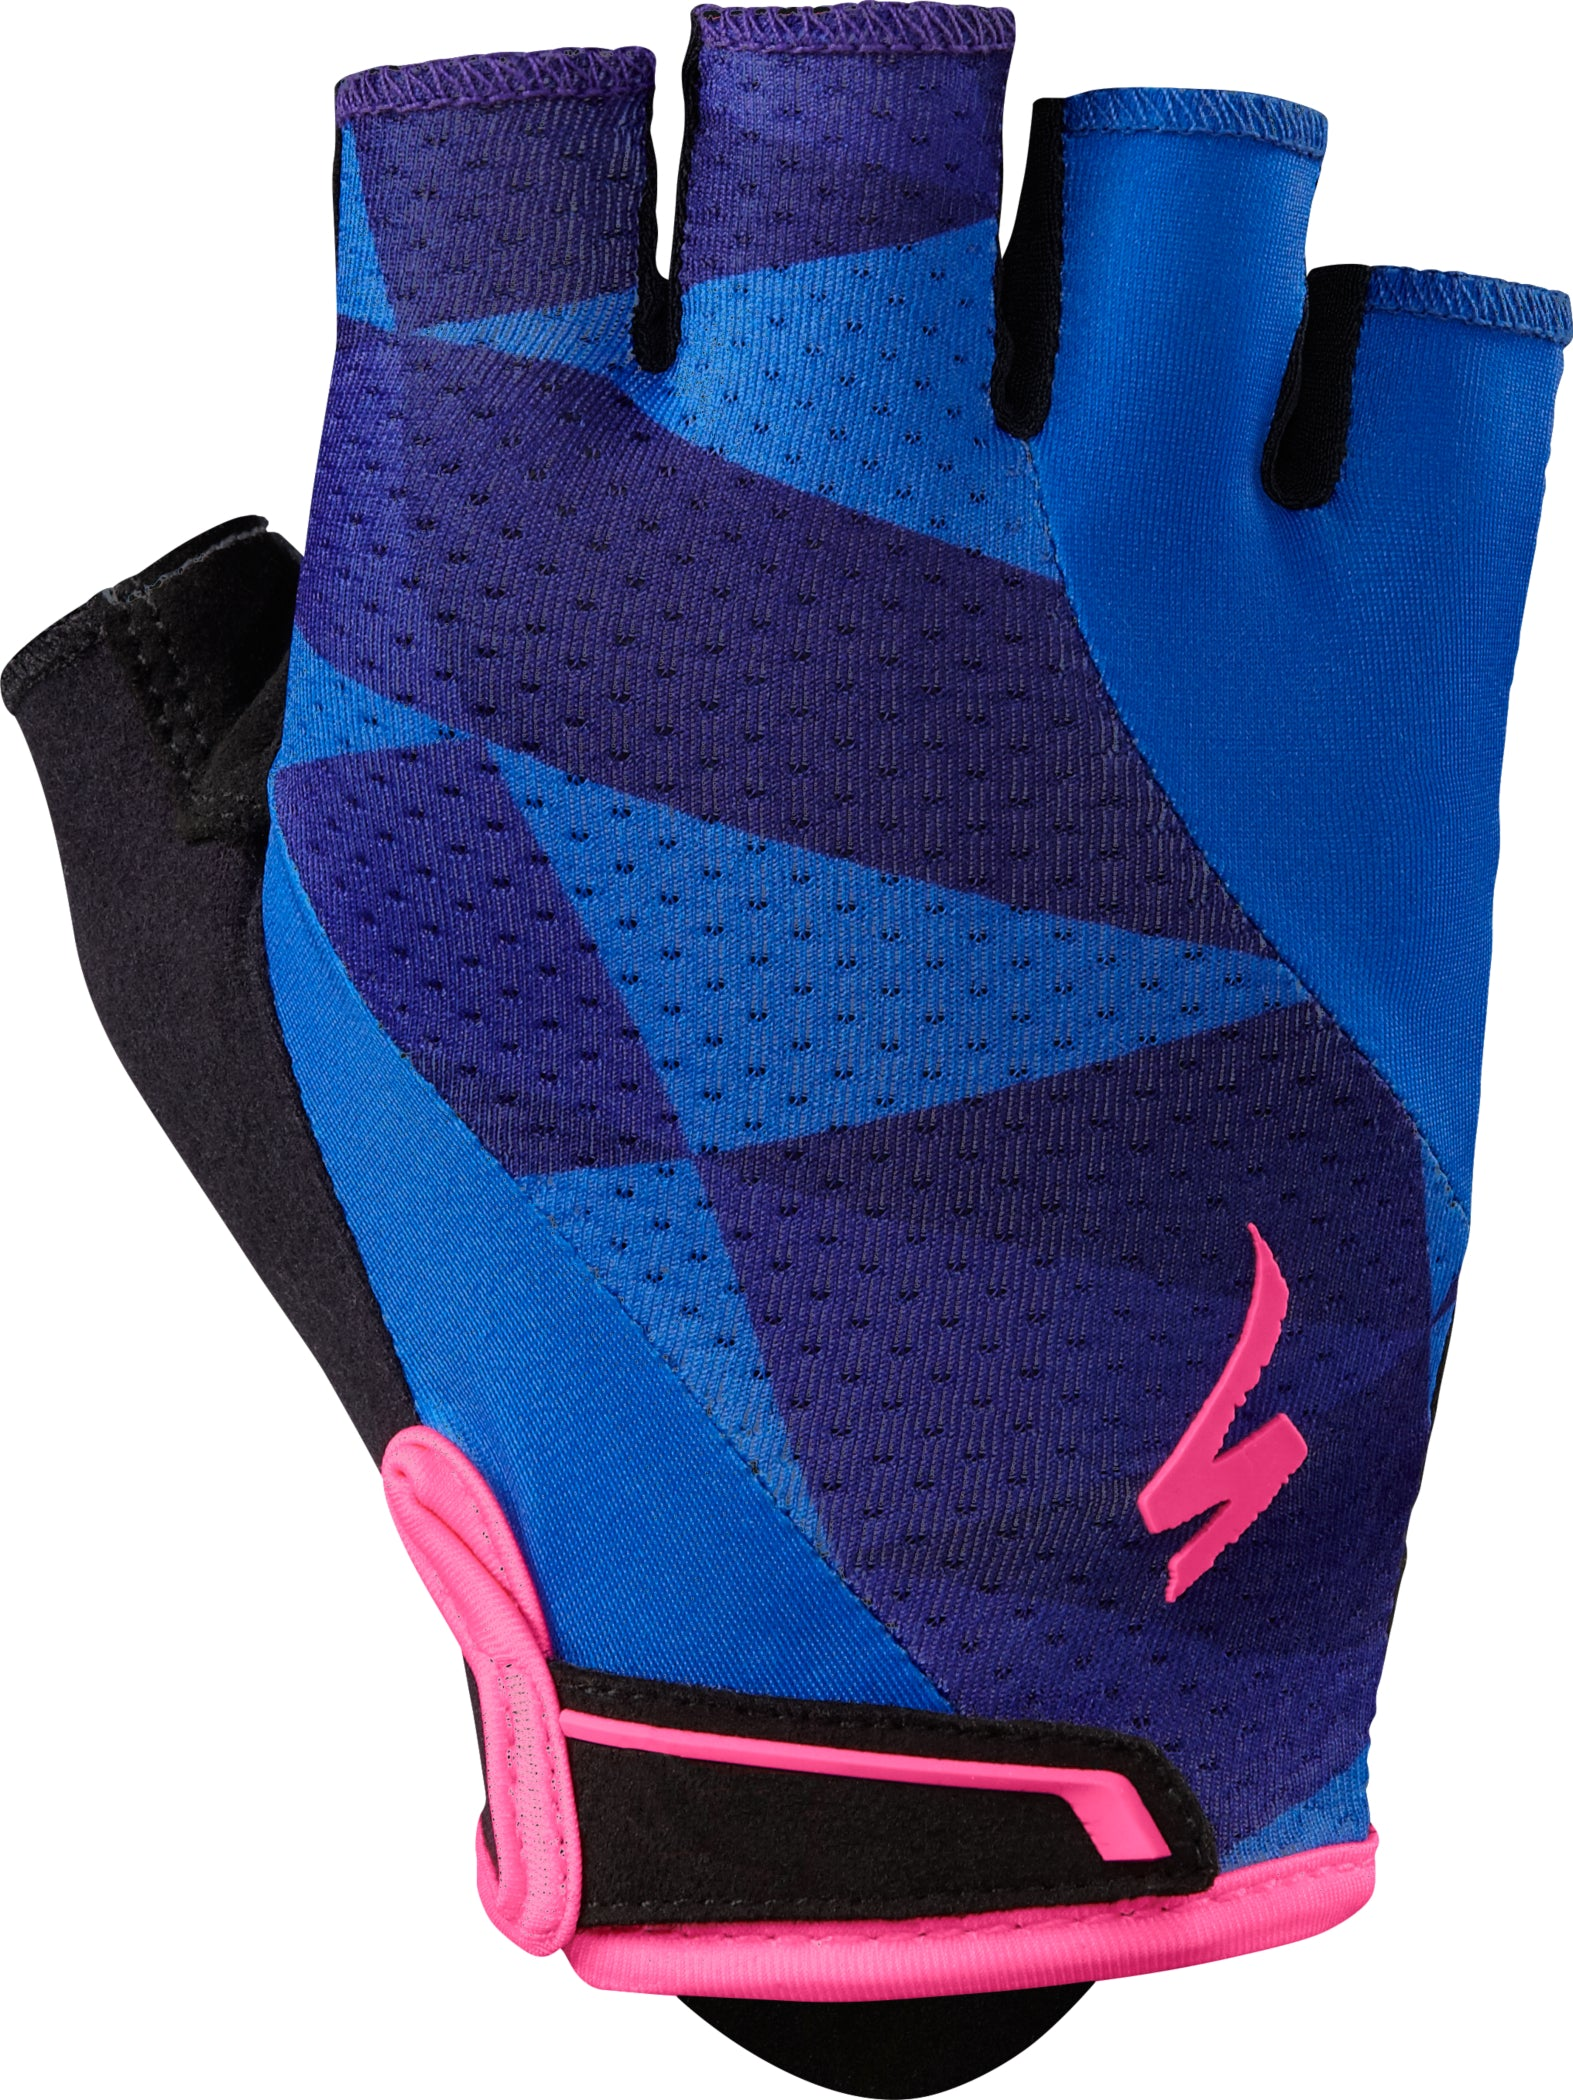 Women's Body Geometry Gel Gloves